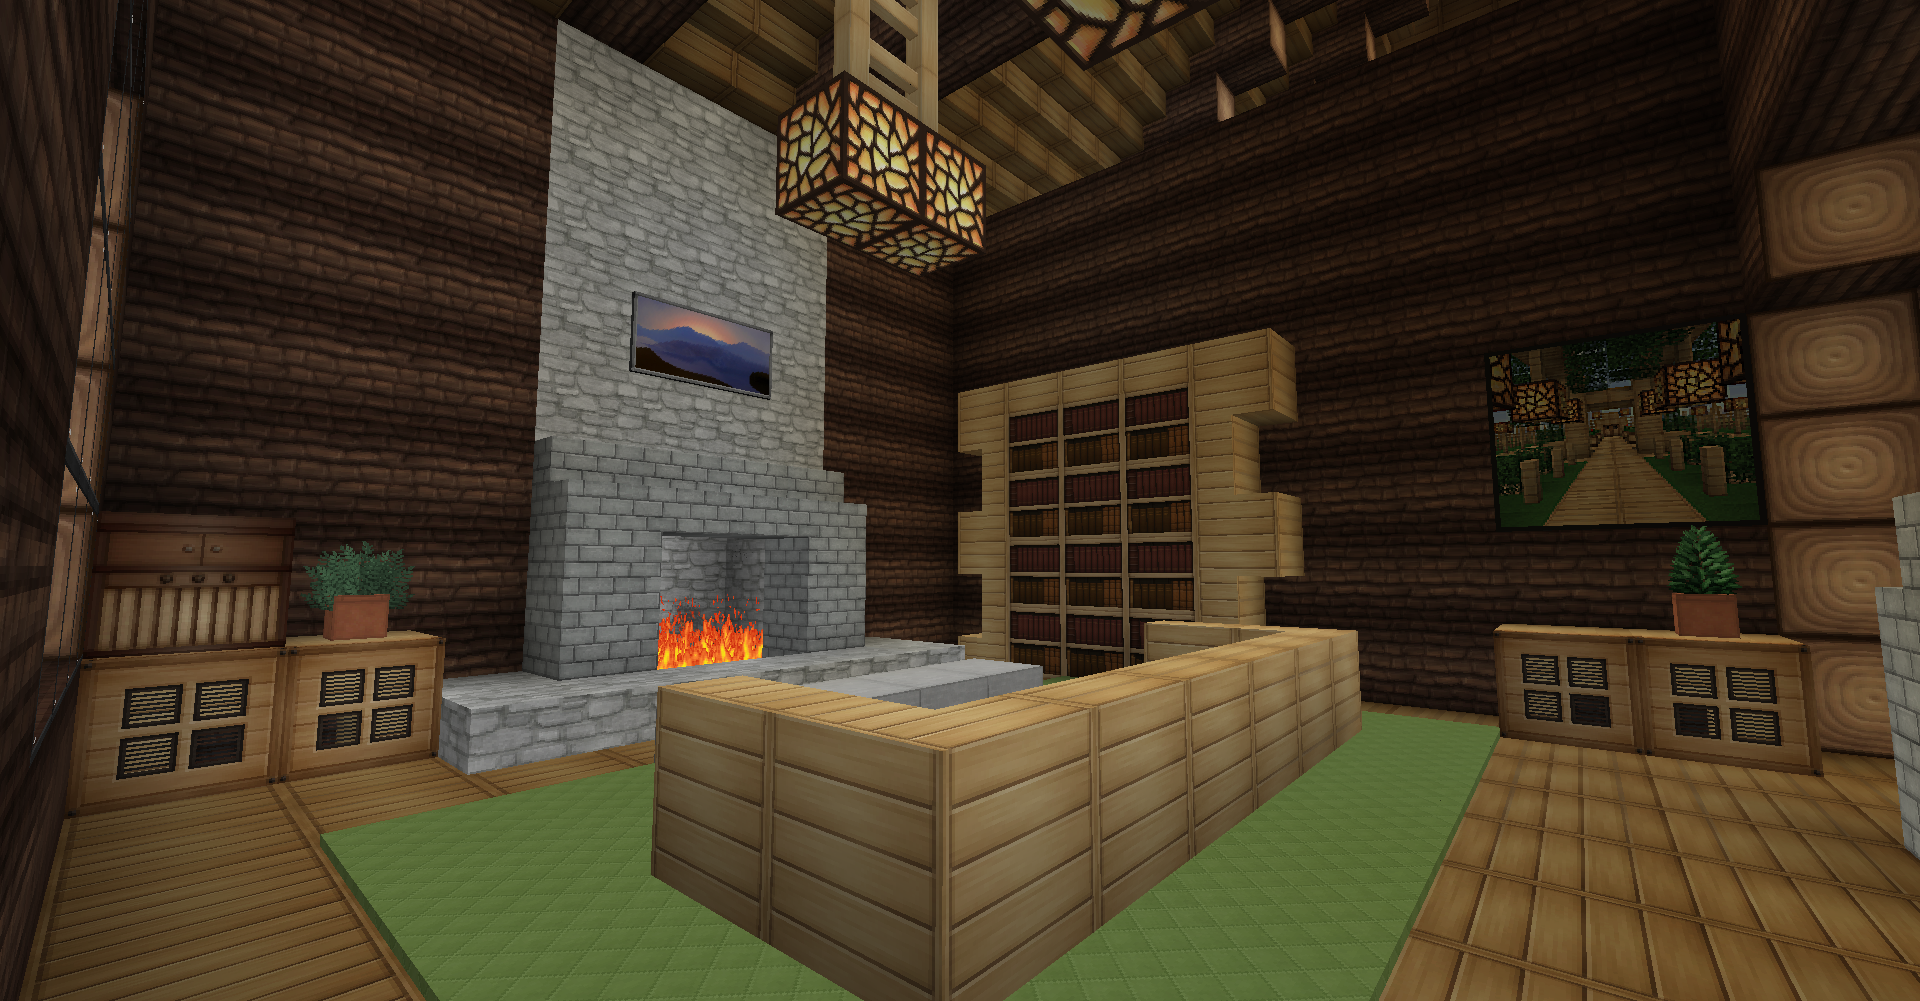 Minecraft Survival Log Cabin Interior Living Room Minecraft Cabin Minecraft House Designs Cabin Interiors